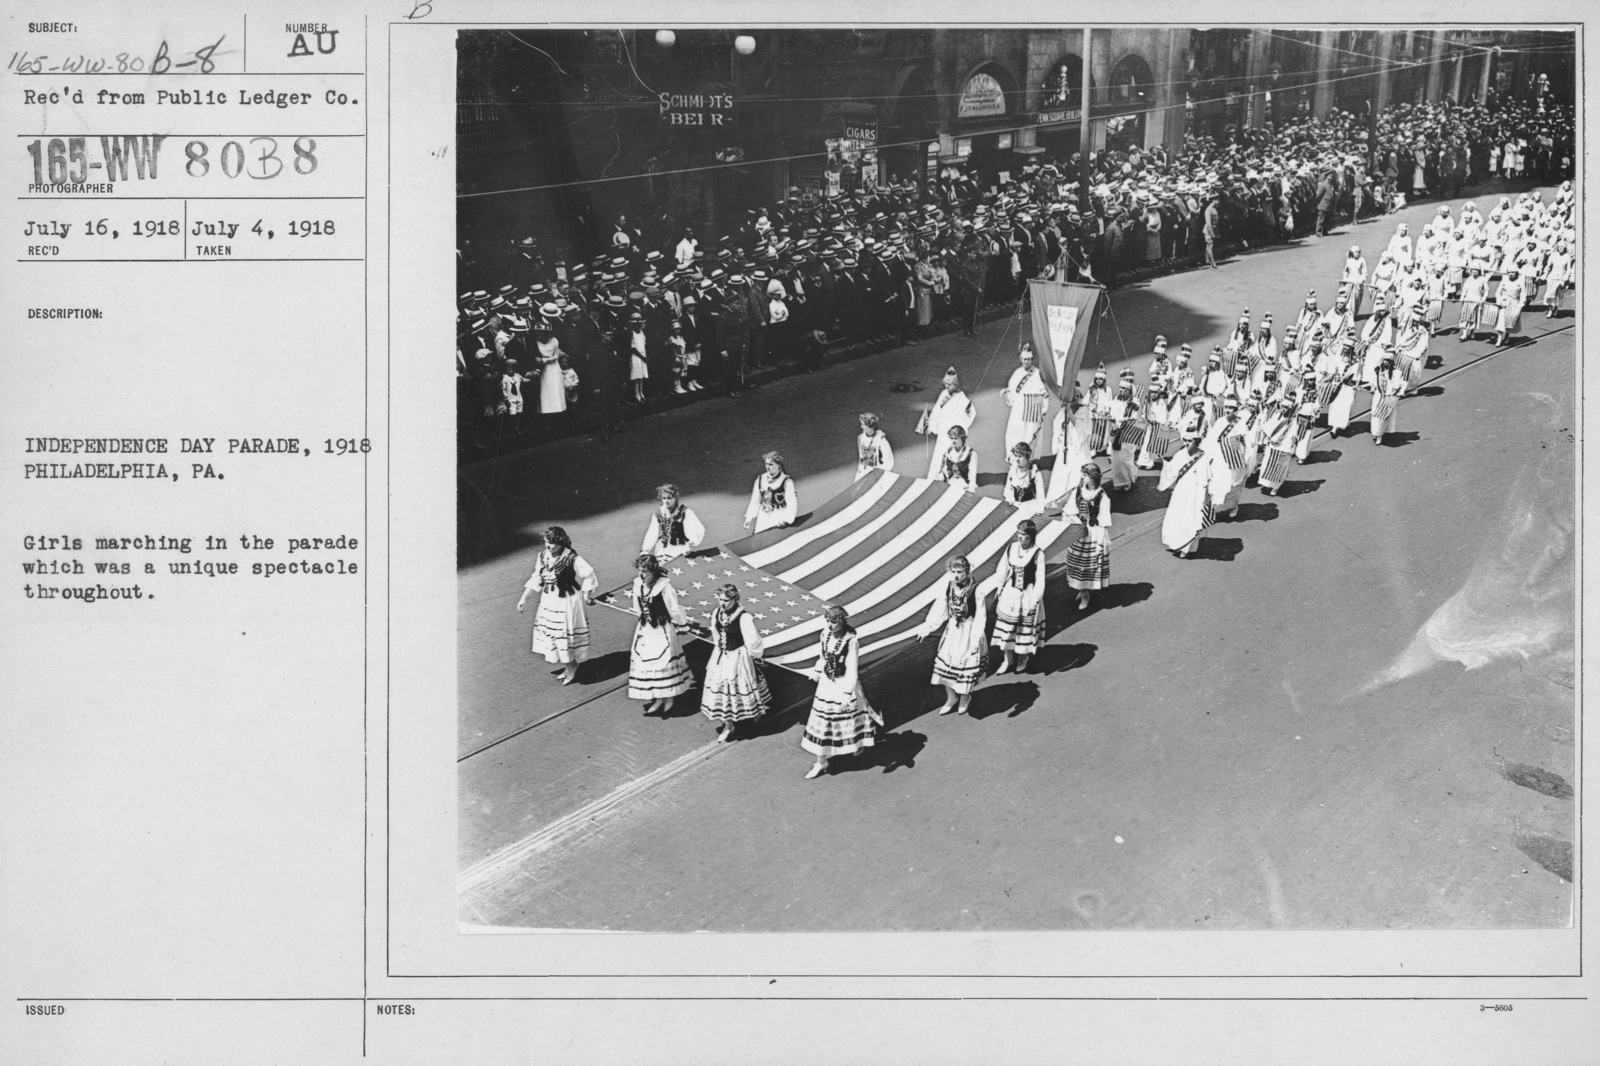 Ceremonies - Independence Day Parades (All States) - Independence Day Parade, 1918, Philadelphia, PA. Girls marching in the parade which was a unique spectable throughout